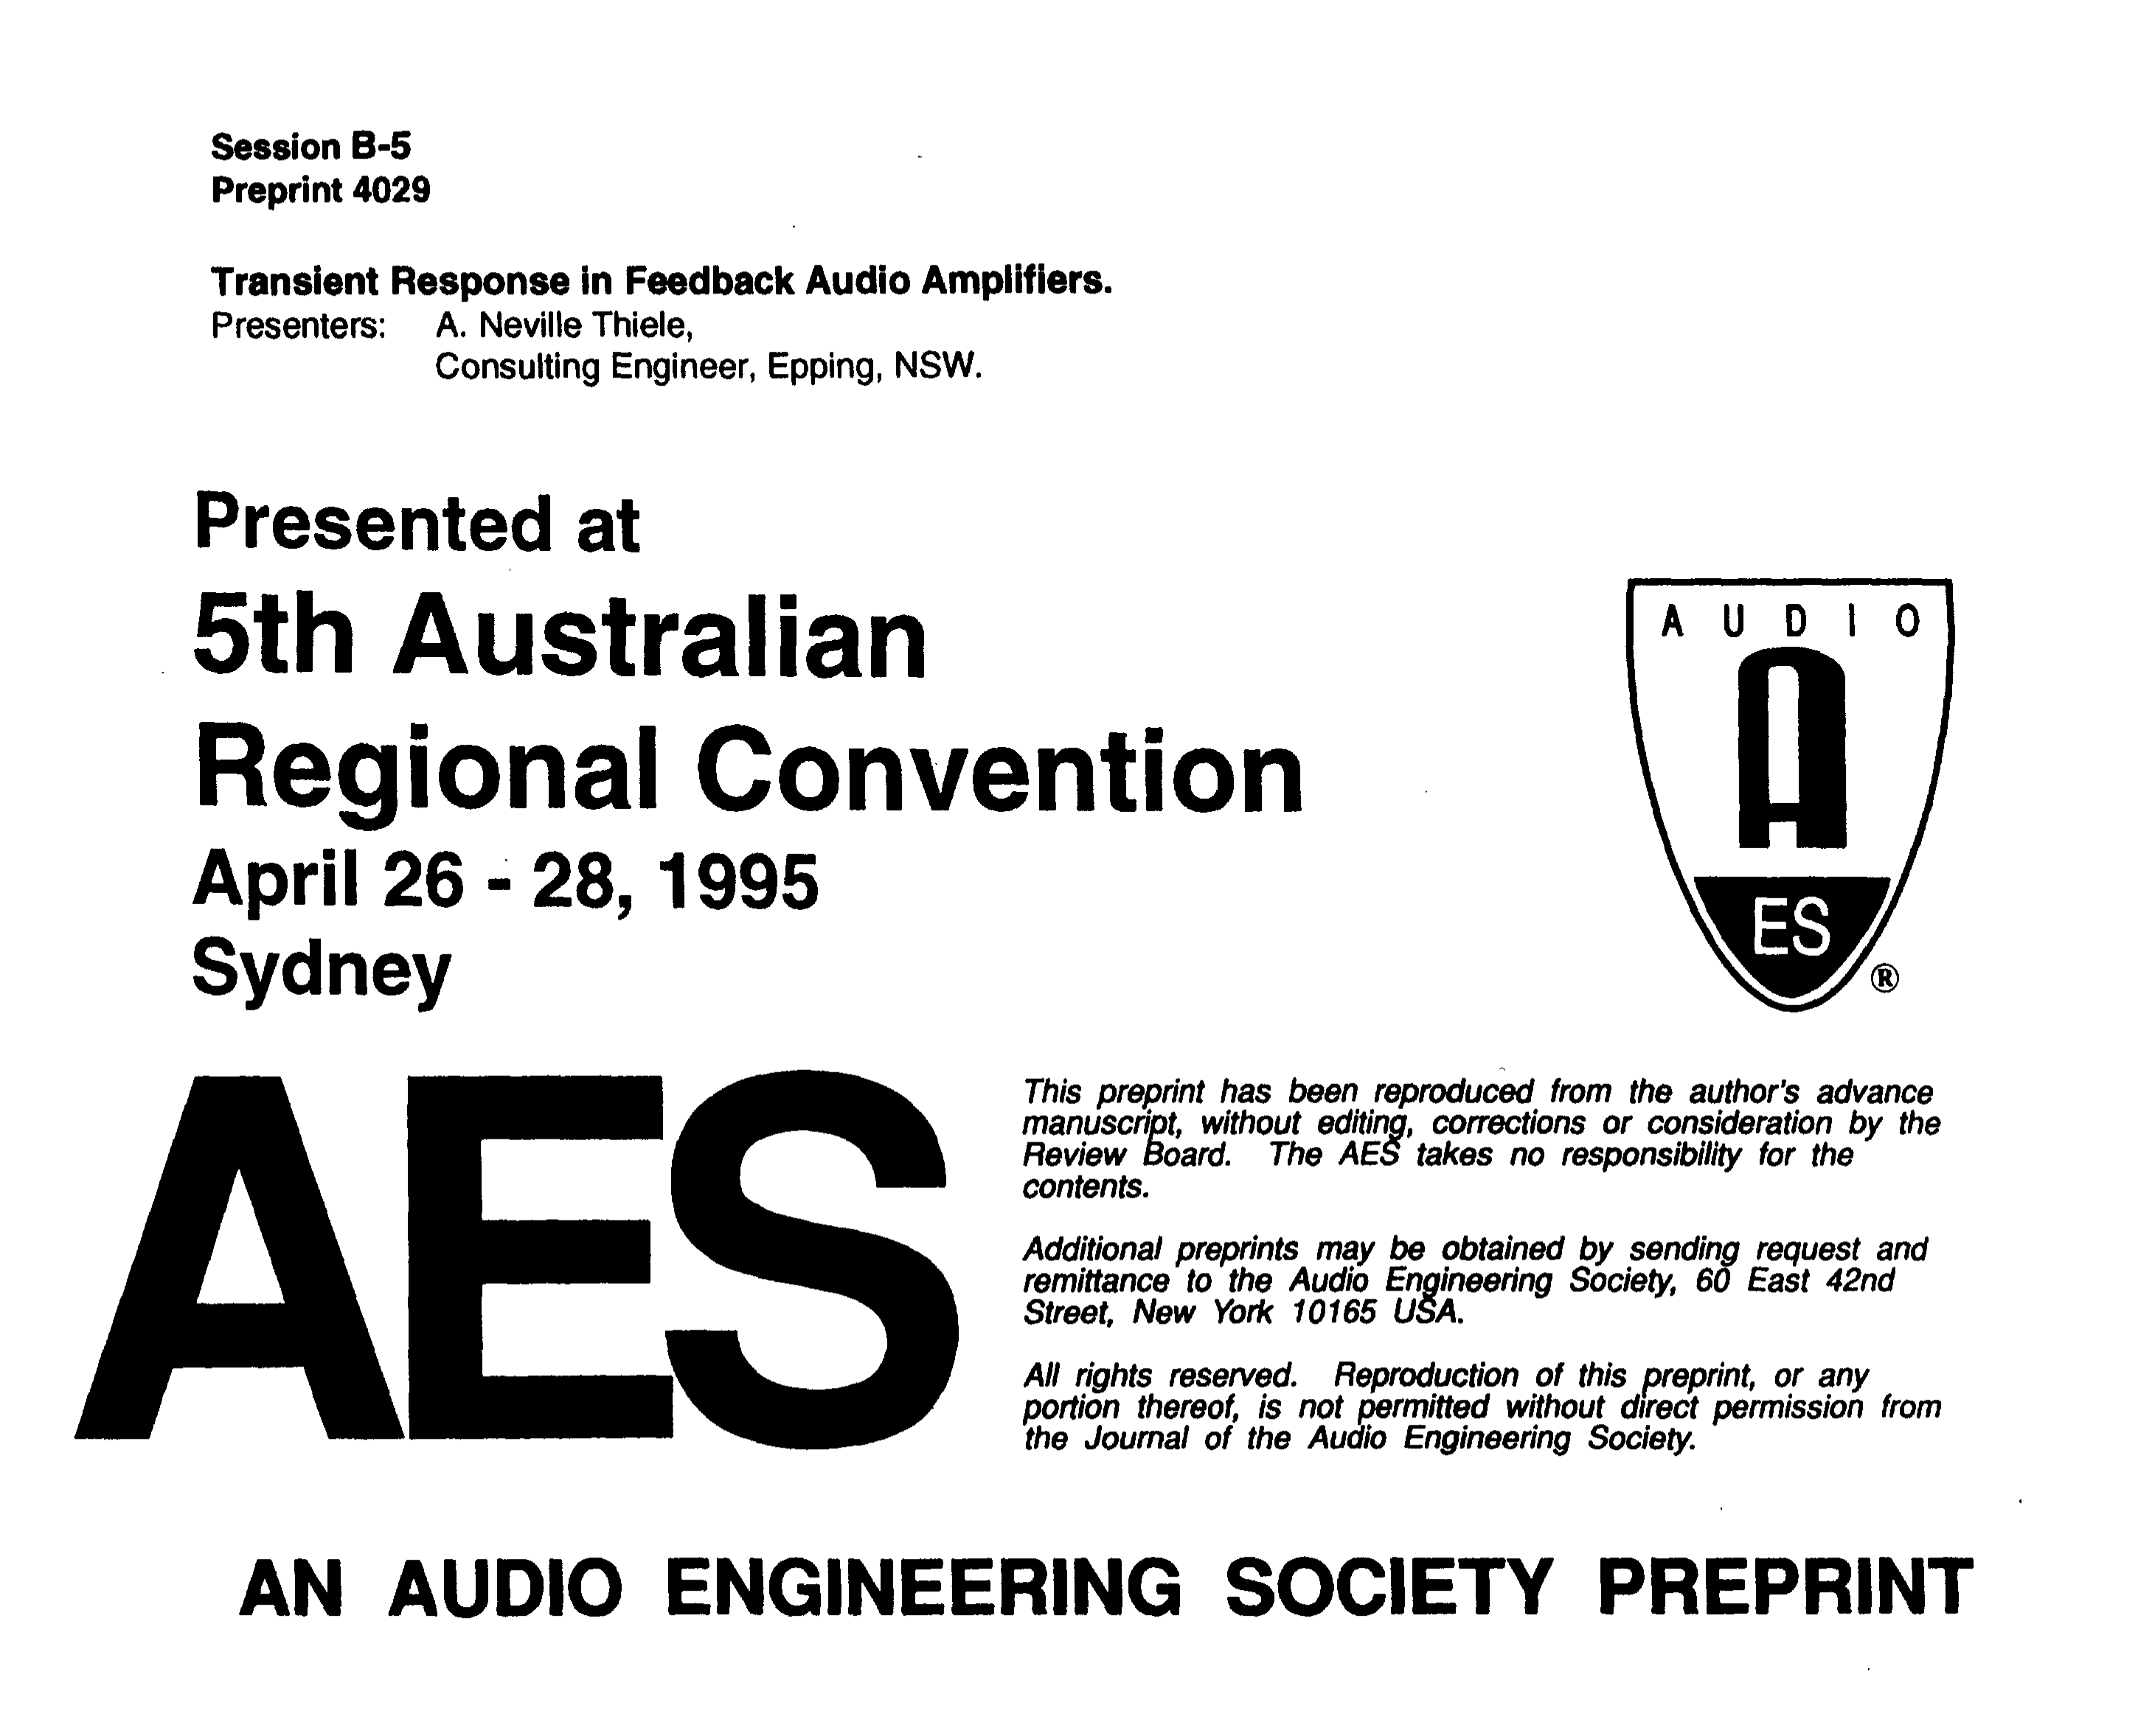 Aes E Library Transient Response In Feedback Audio Amplifiers Fig 103 Fm Radio Using Af If And Rf